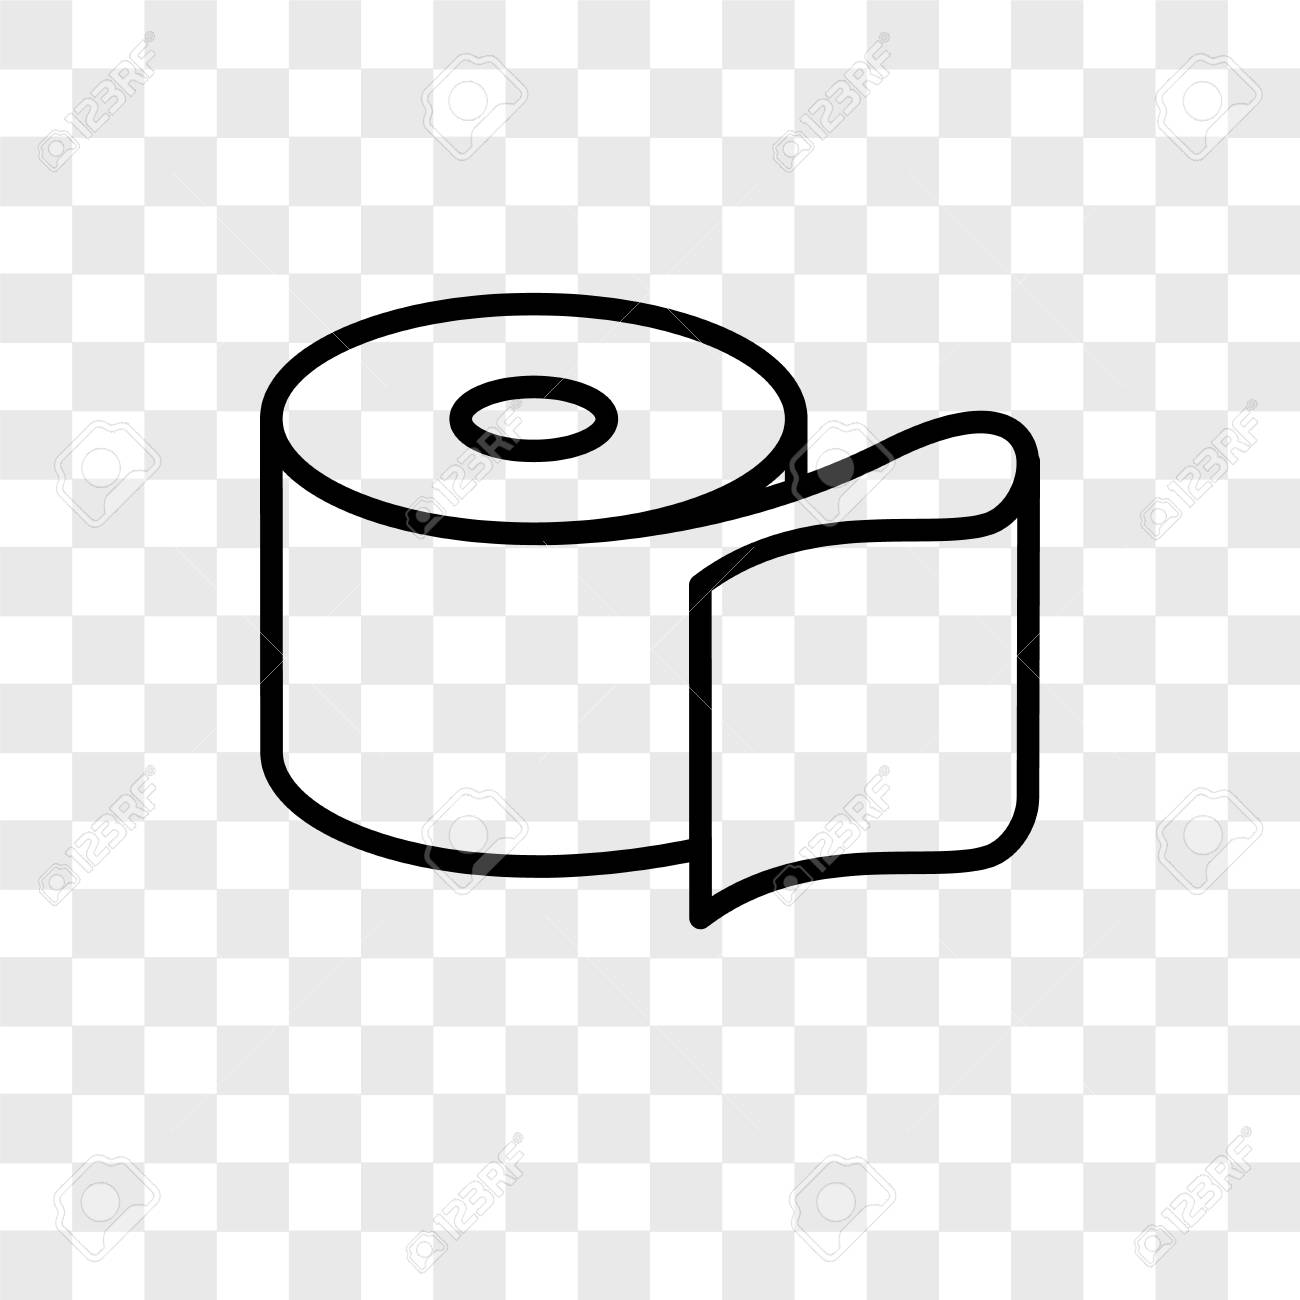 Toilet Paper Vector Icon Isolated On Transparent Background